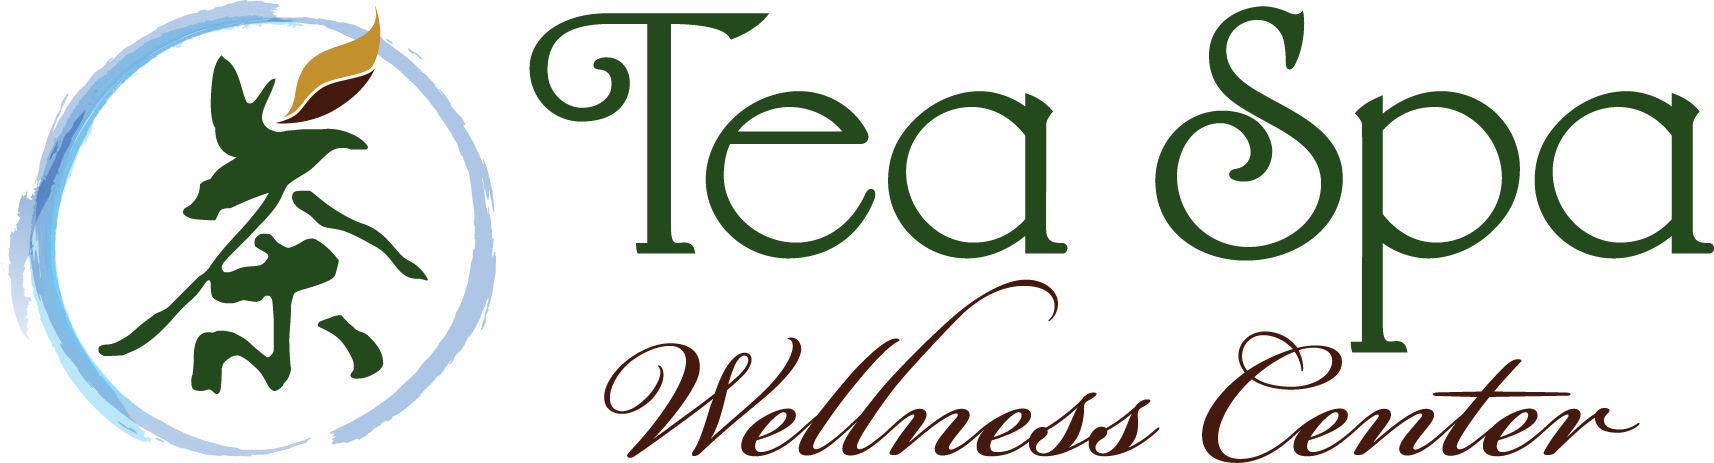 Tea Spa Wellness Center Gaithersburg | Best Day Massage Facial Nail Spa Serving Montgomery County